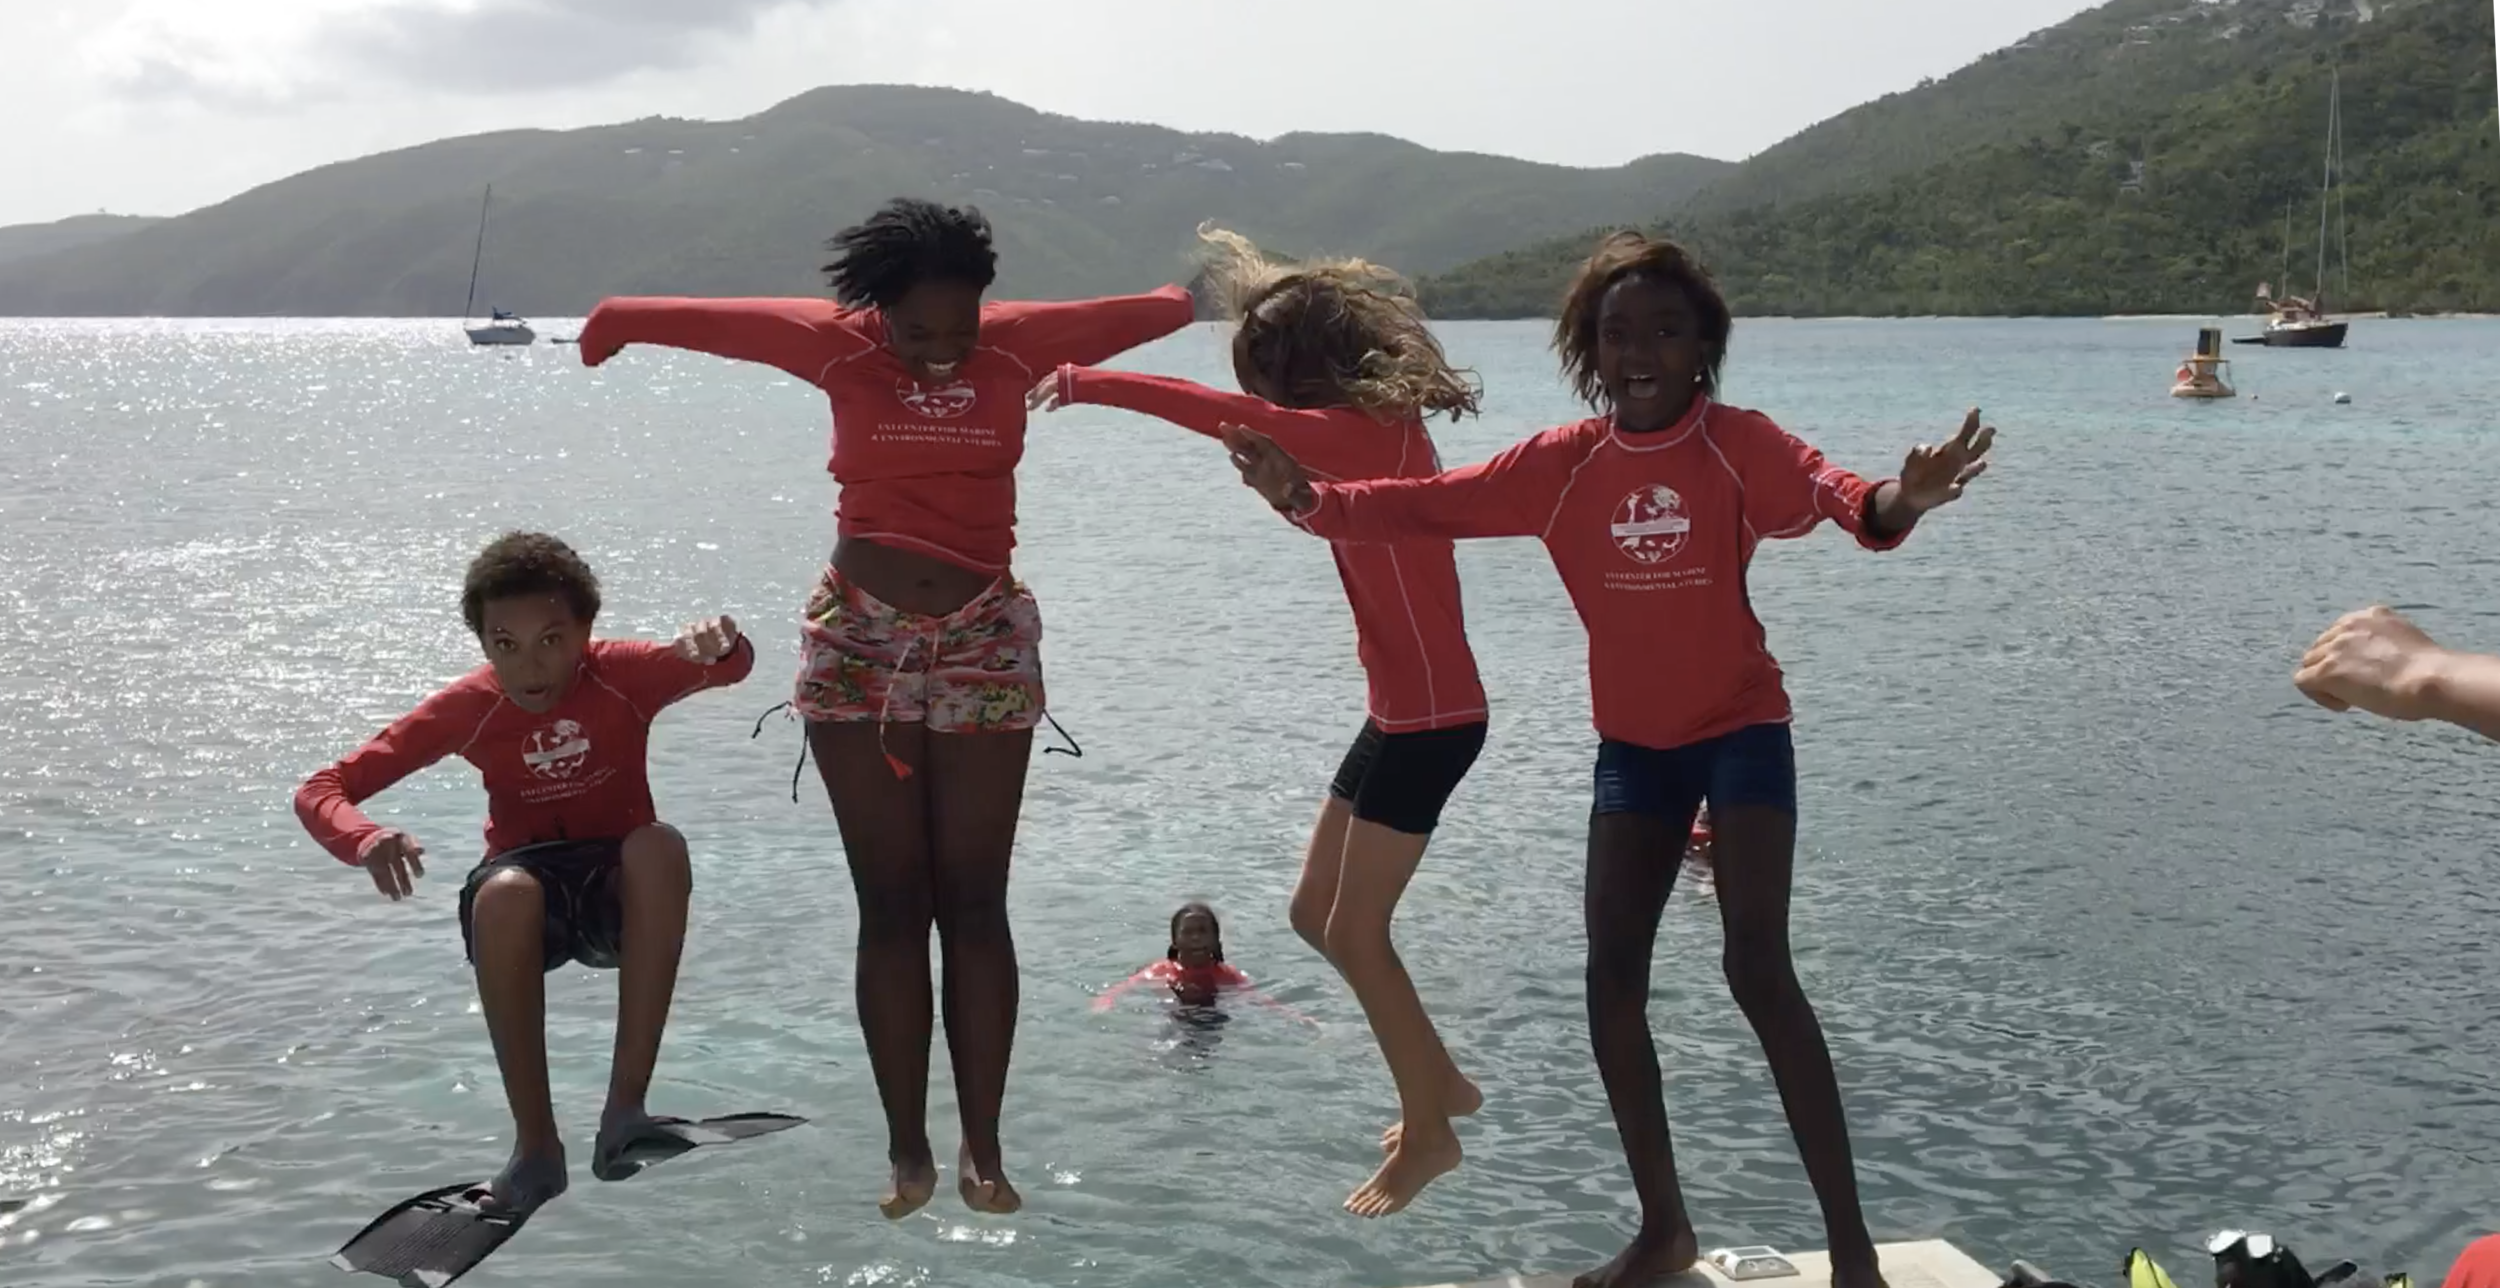 Jumping into the ocean was the student's favorite way to end the day.